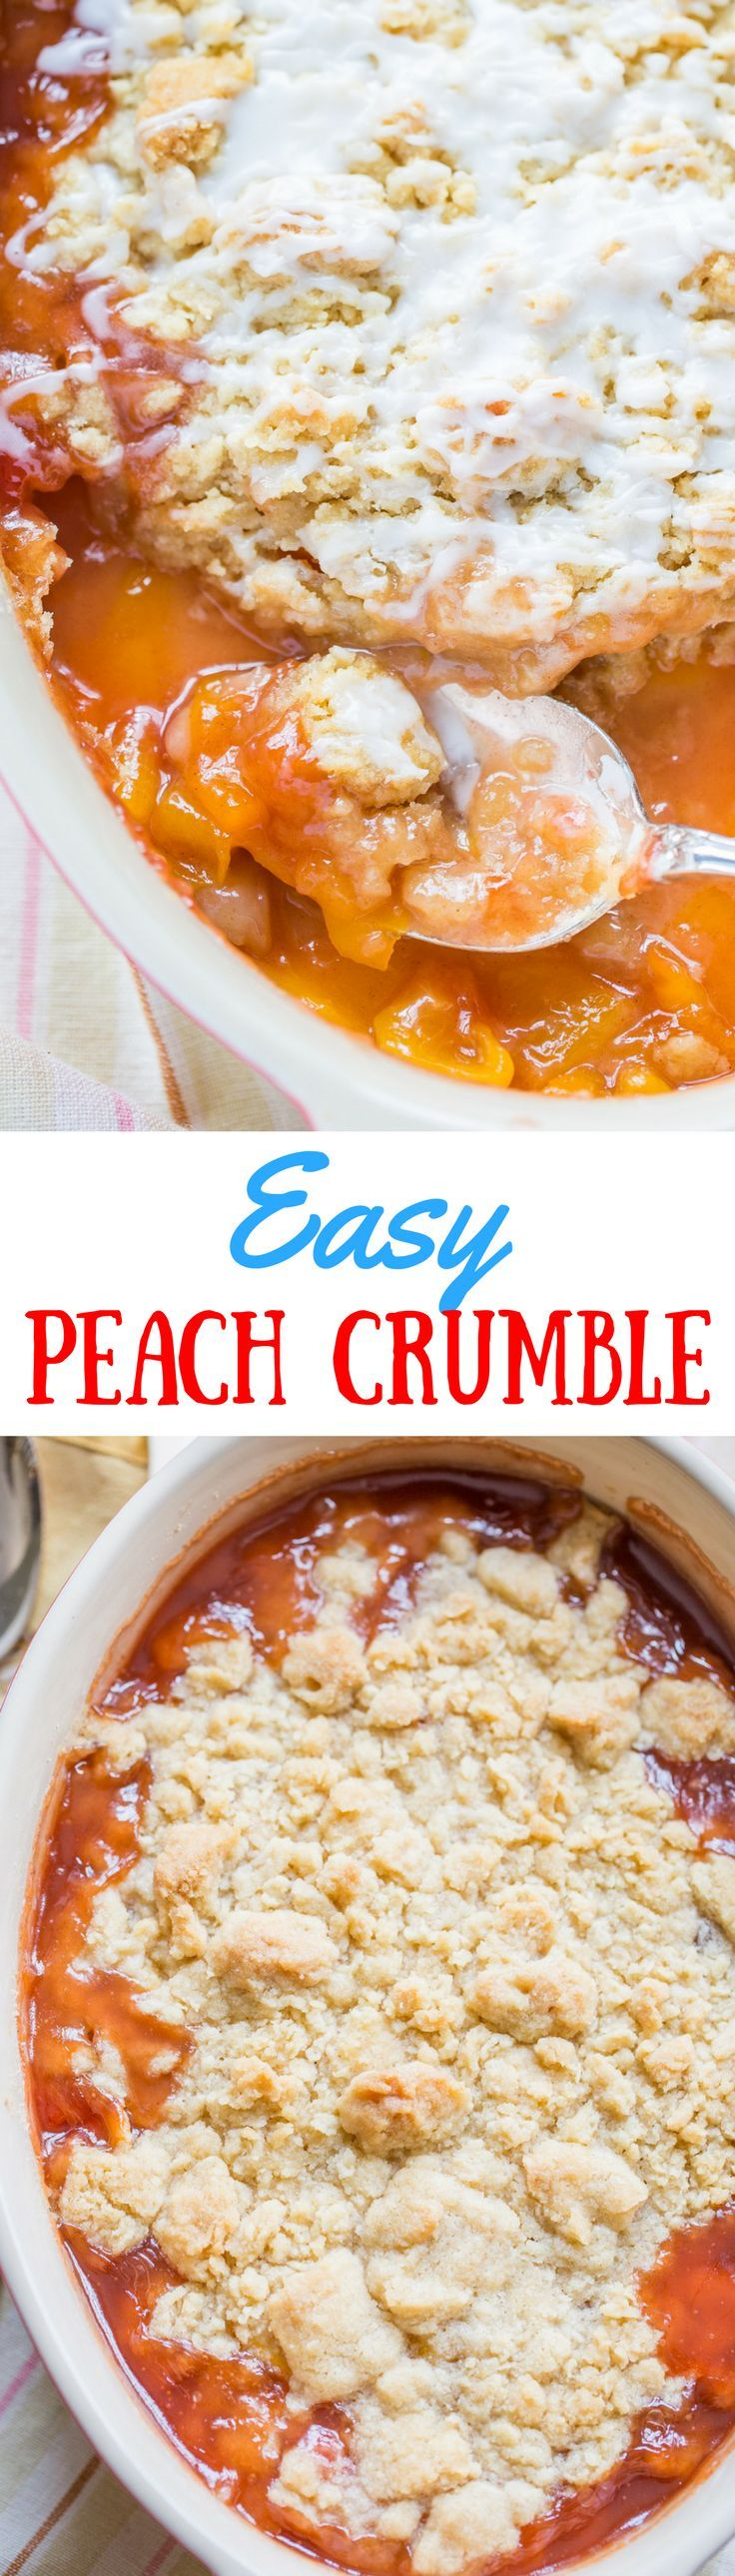 "Easy Peach Crumble - a delicious fresh fruit crumble made with a flour, butter and sugar mixture that is ""crumbled"" on top of sweetened fruit. 